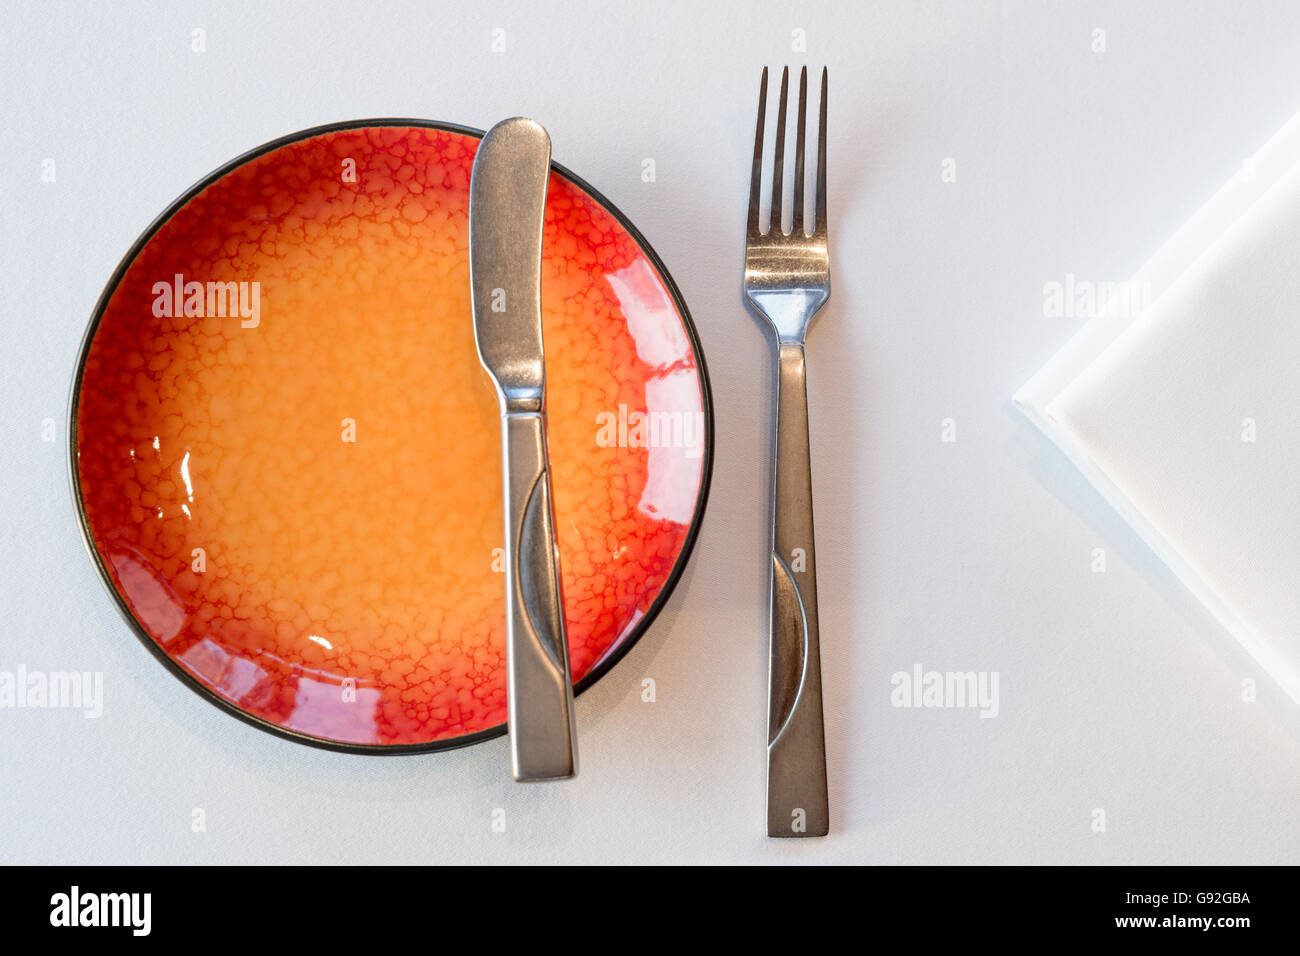 Starter meal setup with red hot plate and white napkin decoration. Selective focus. & Starter meal setup with red hot plate and white napkin decoration ...